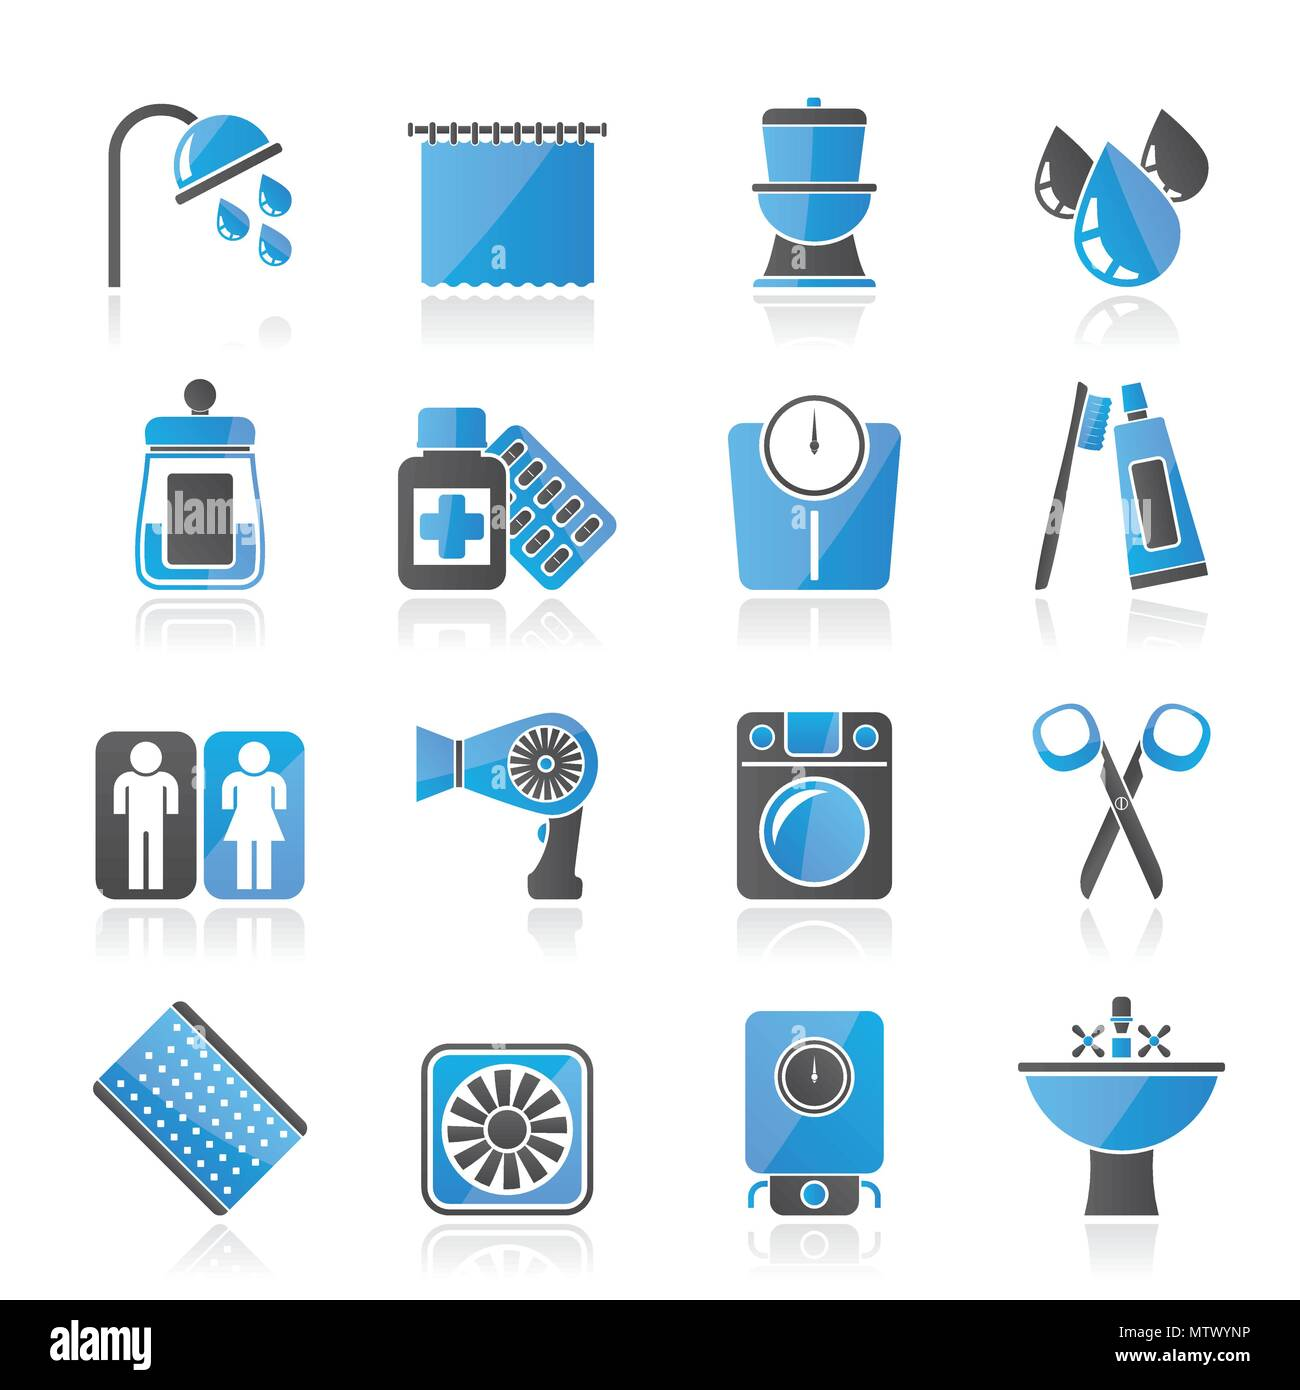 Bathroom and Personal Care icons- vector icon set 2 - Stock Image